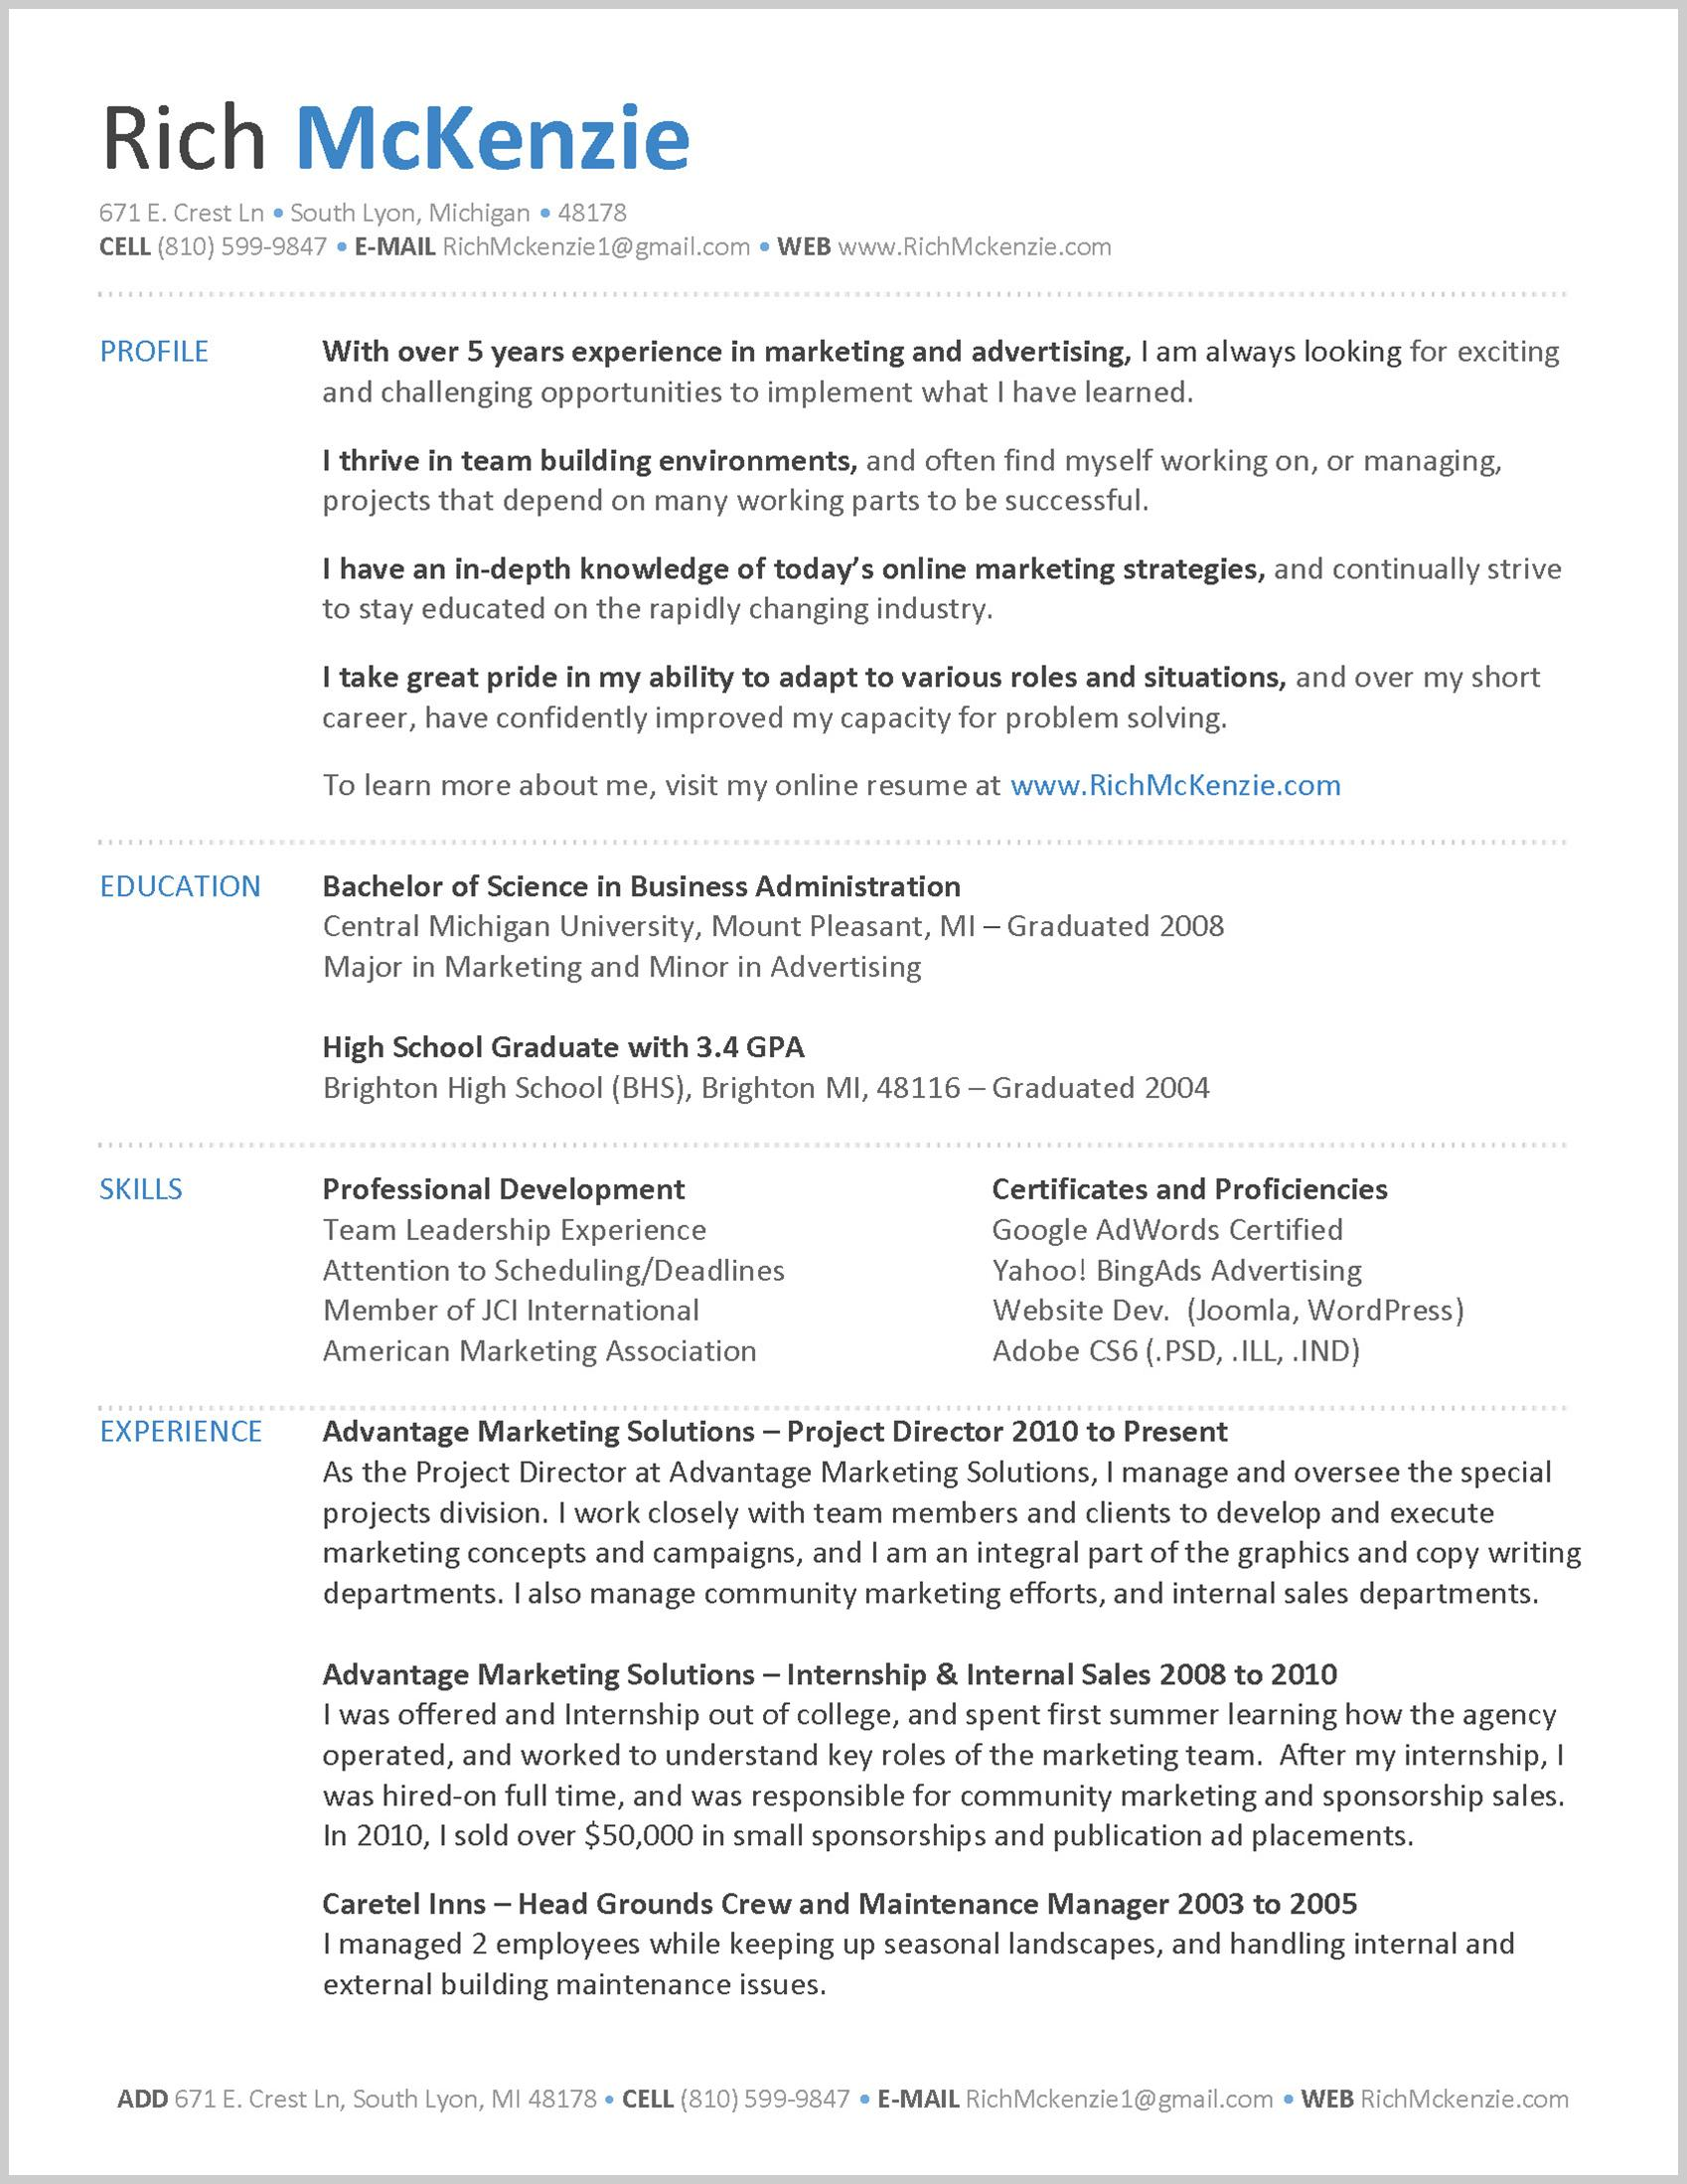 free resume download sites